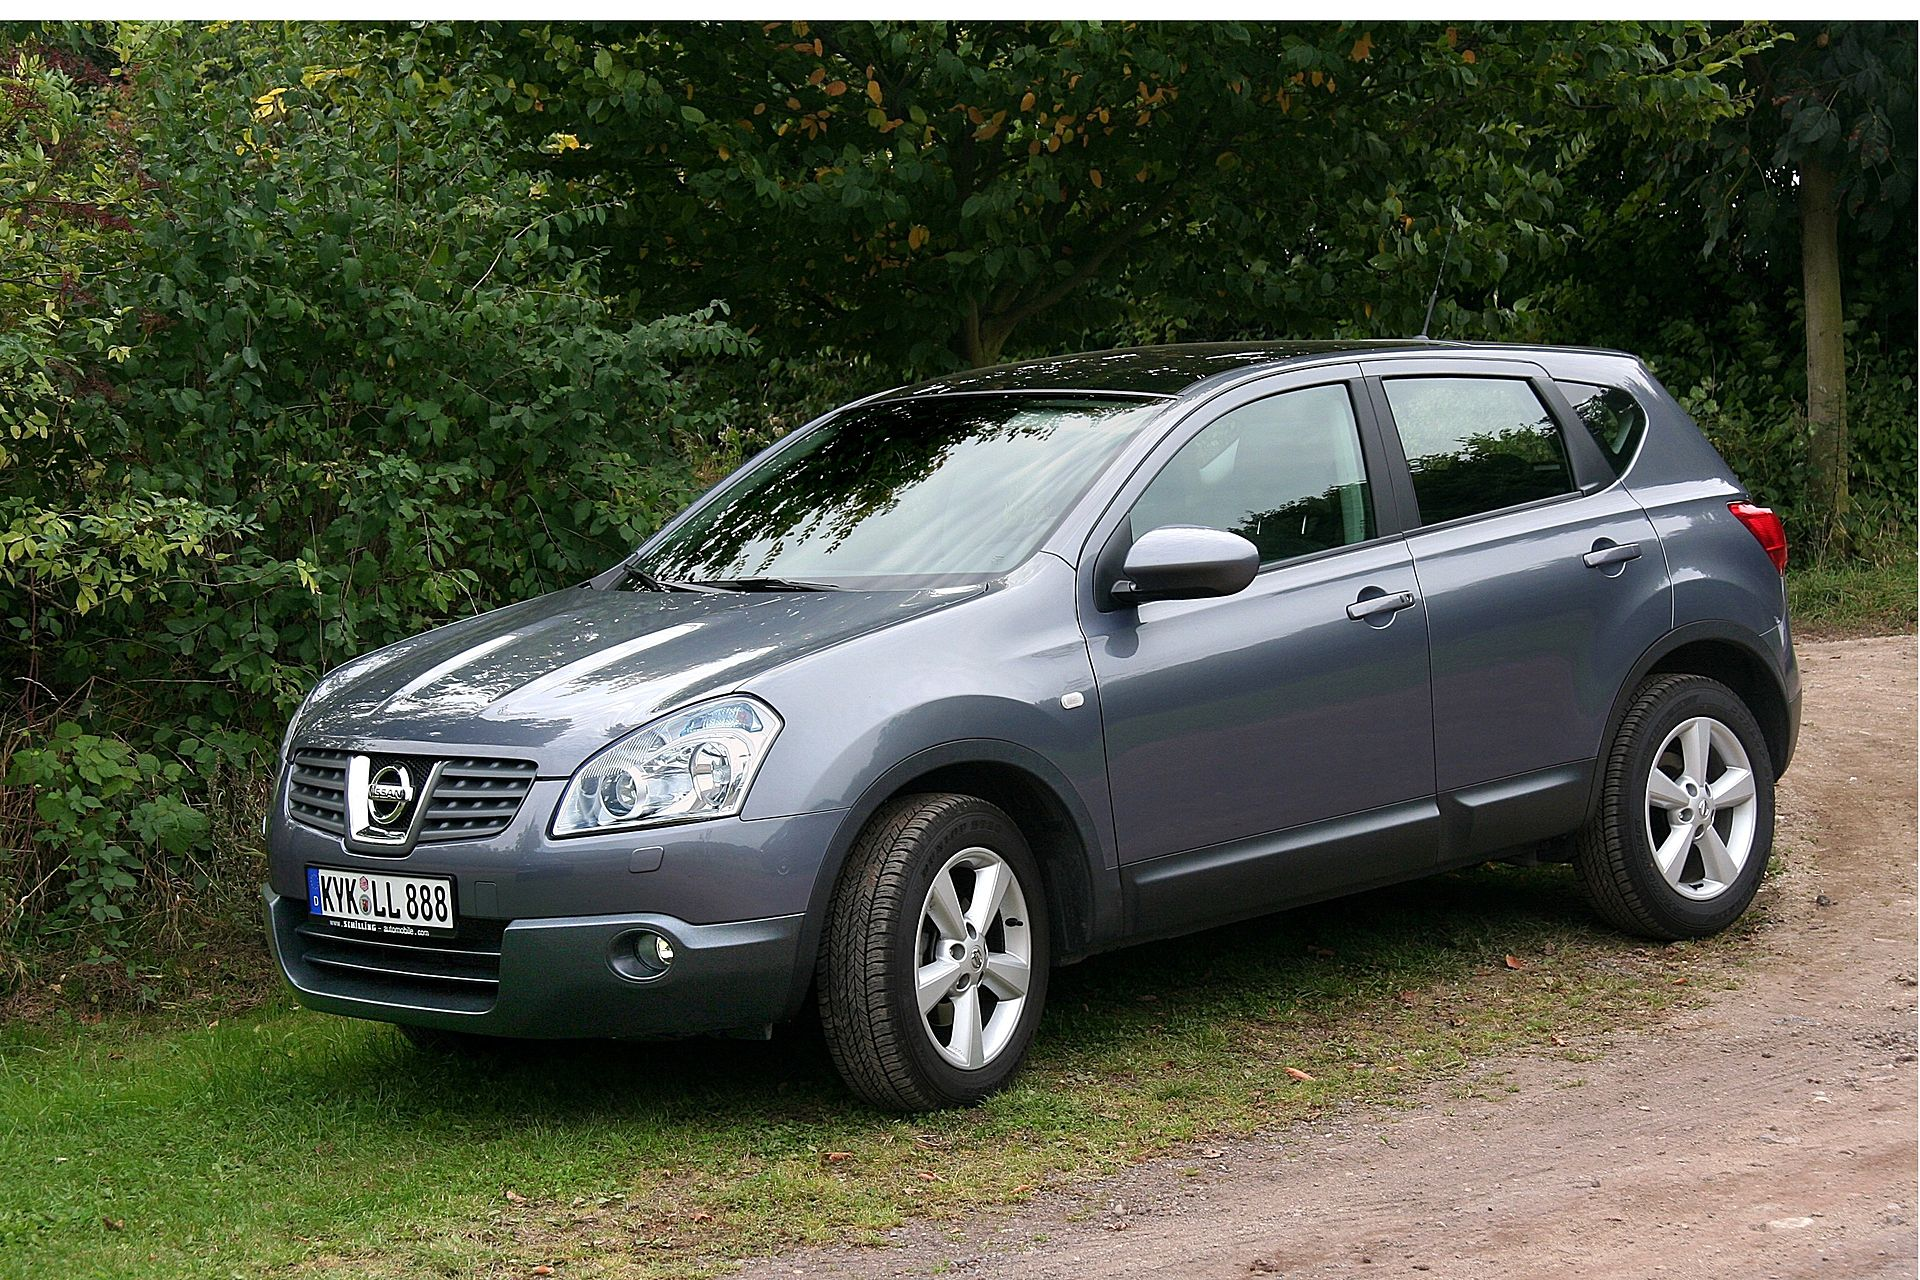 Nissan Dualis, the preloved SUV for Mr Reliable and Mrs Practical